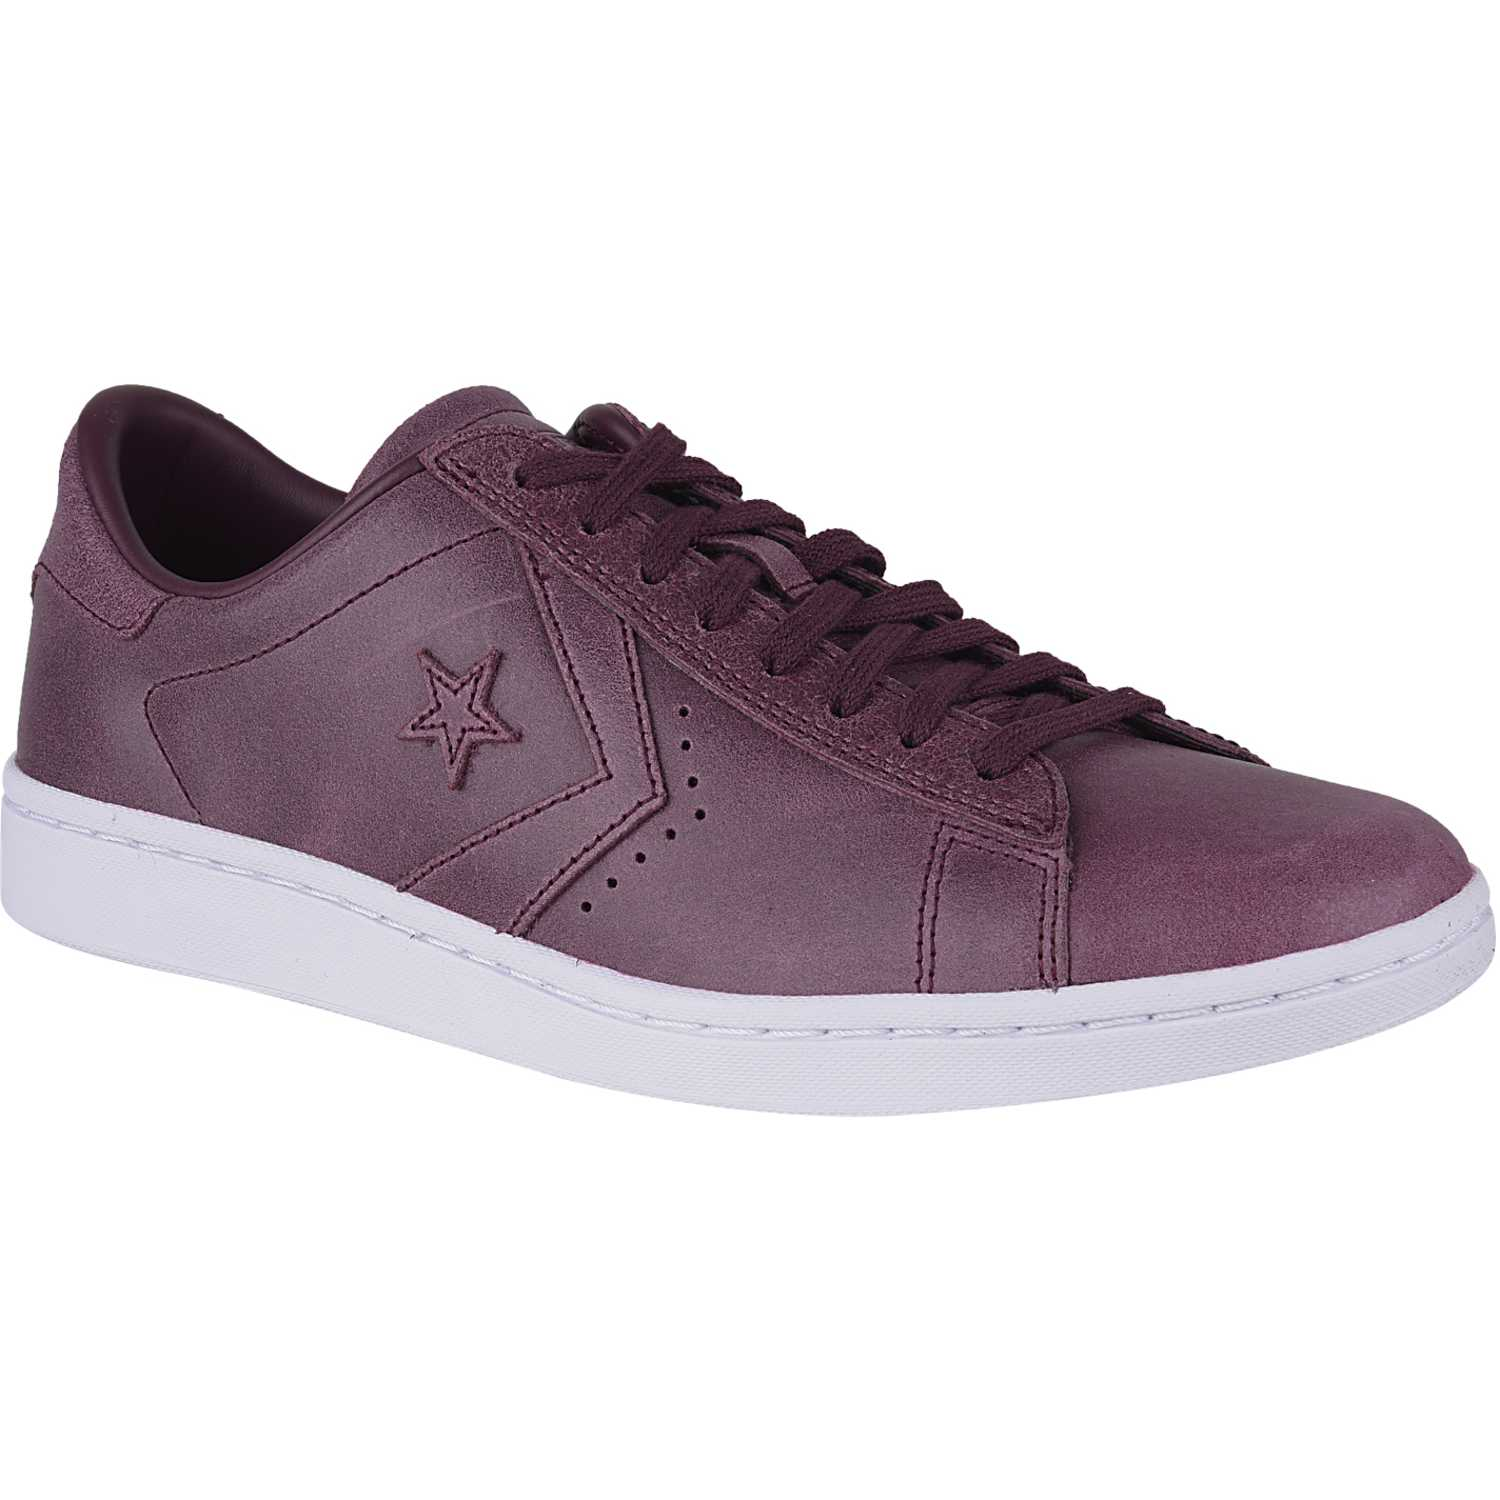 Converse pl lp powder suede Vino / blanco Walking